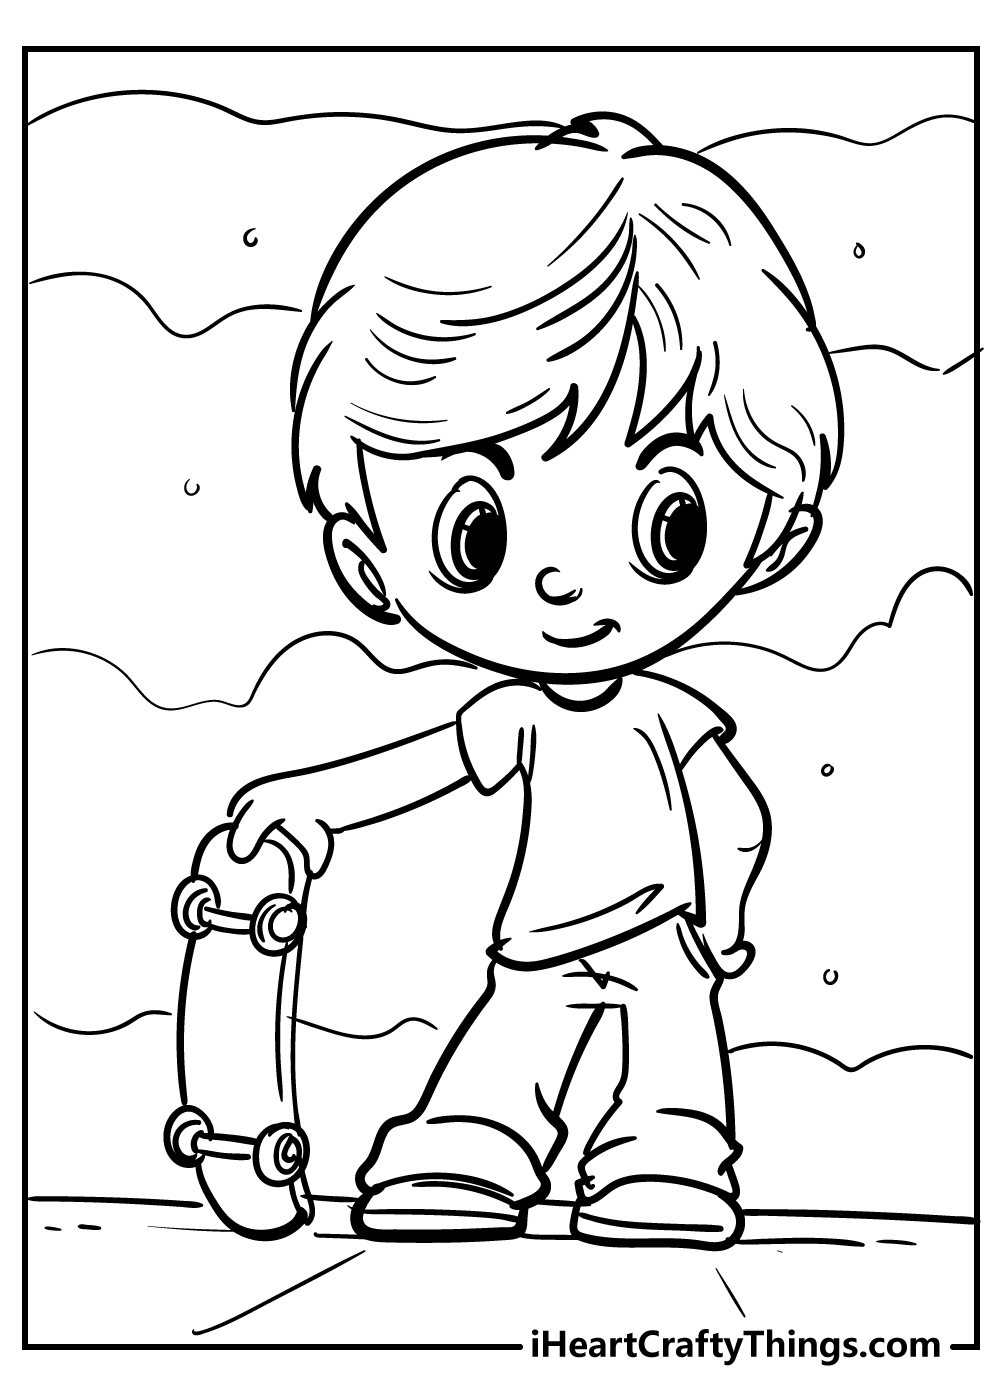 for boys coloring pages free pdf download